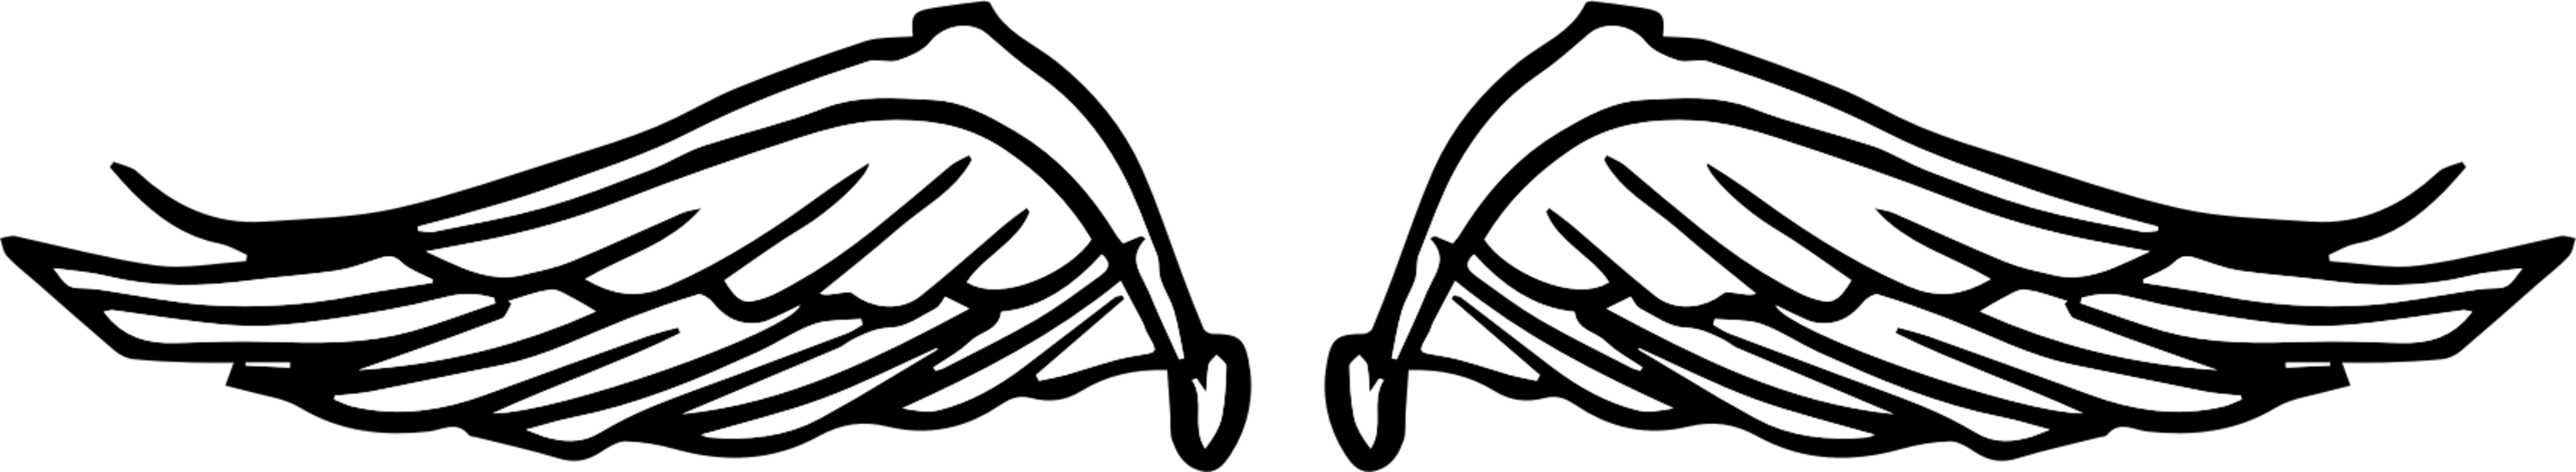 Cartoon wings png. Computer icons doodle line